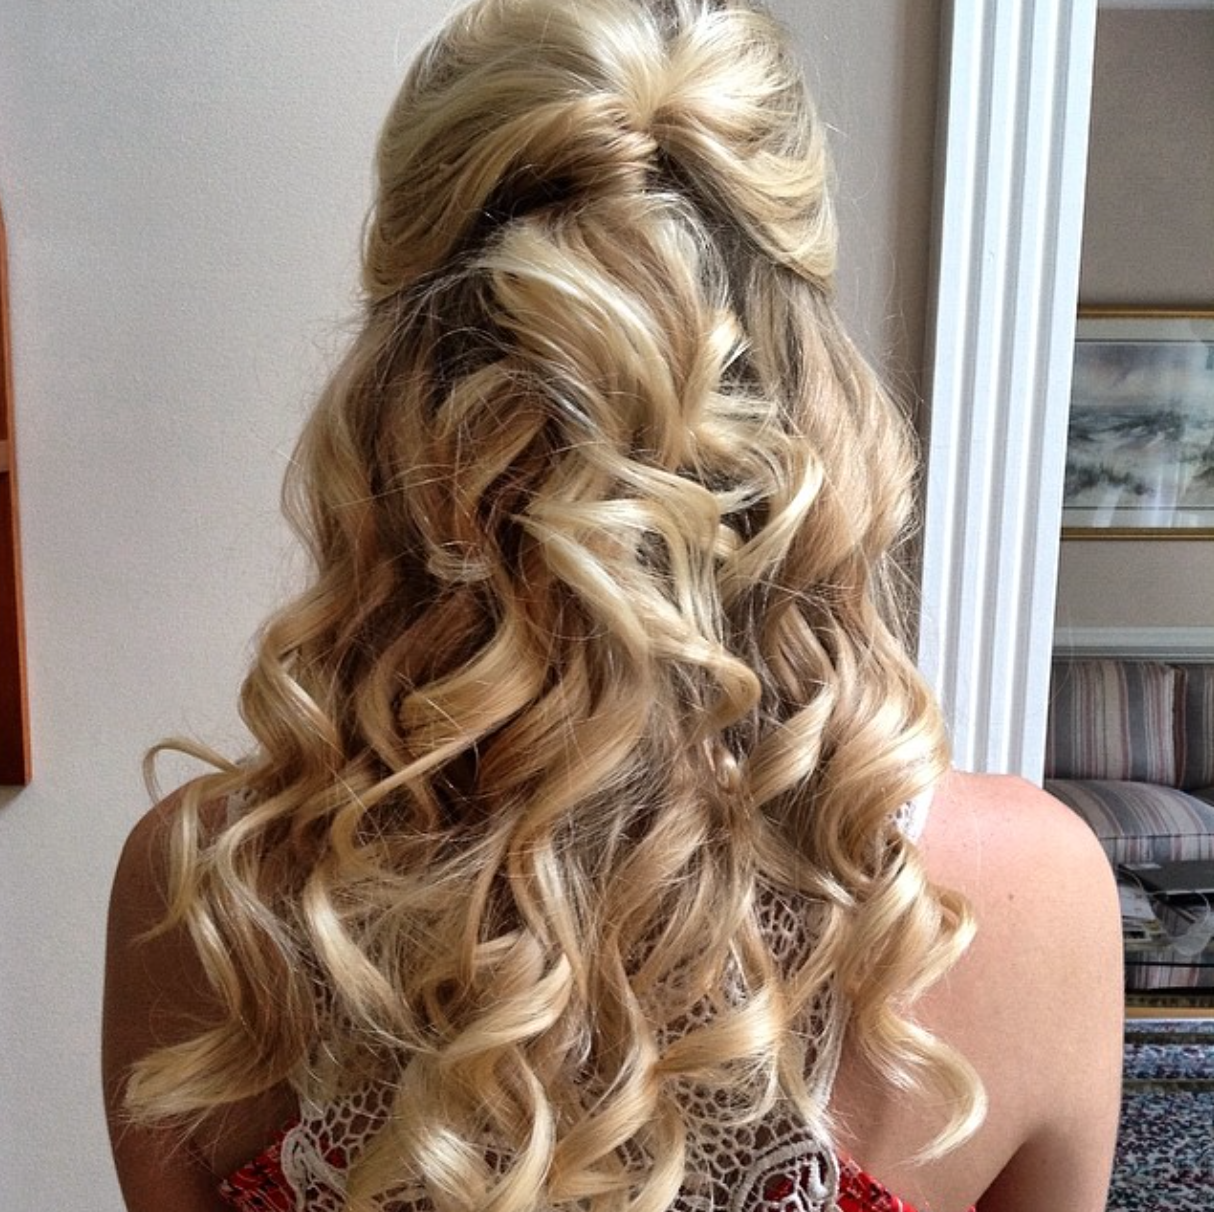 Soft Romantic Curls In A Half Up Style: Romantic, Curly, Half-up Half-down Wedding Hair // By LULA